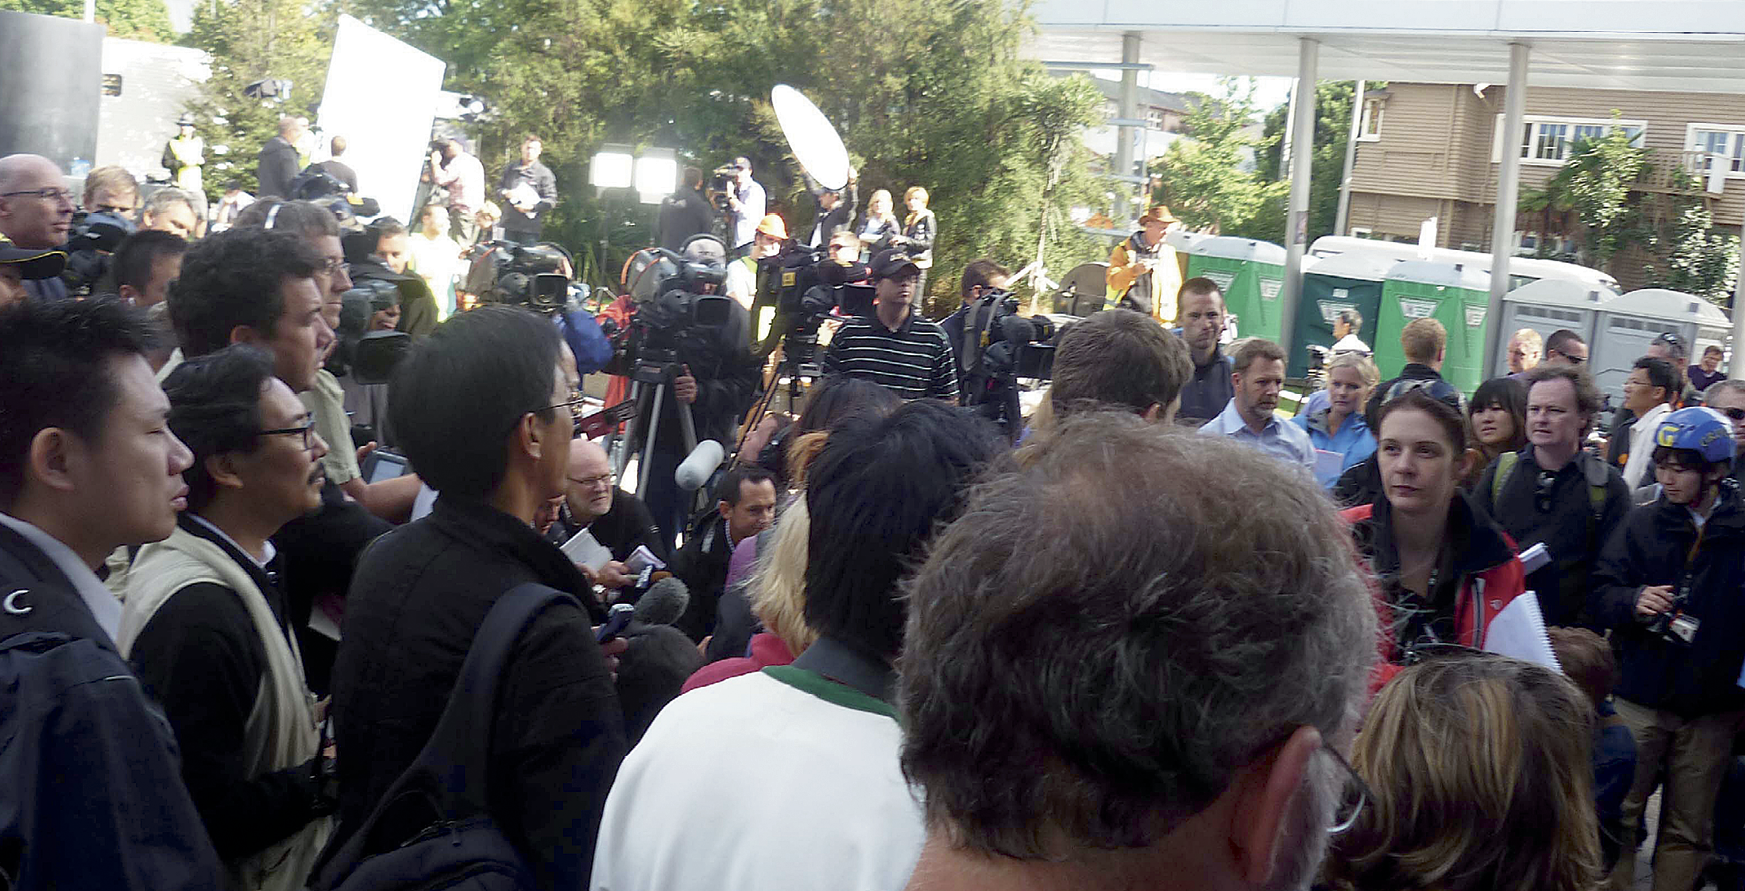 Photograph of a crowd of media personnel